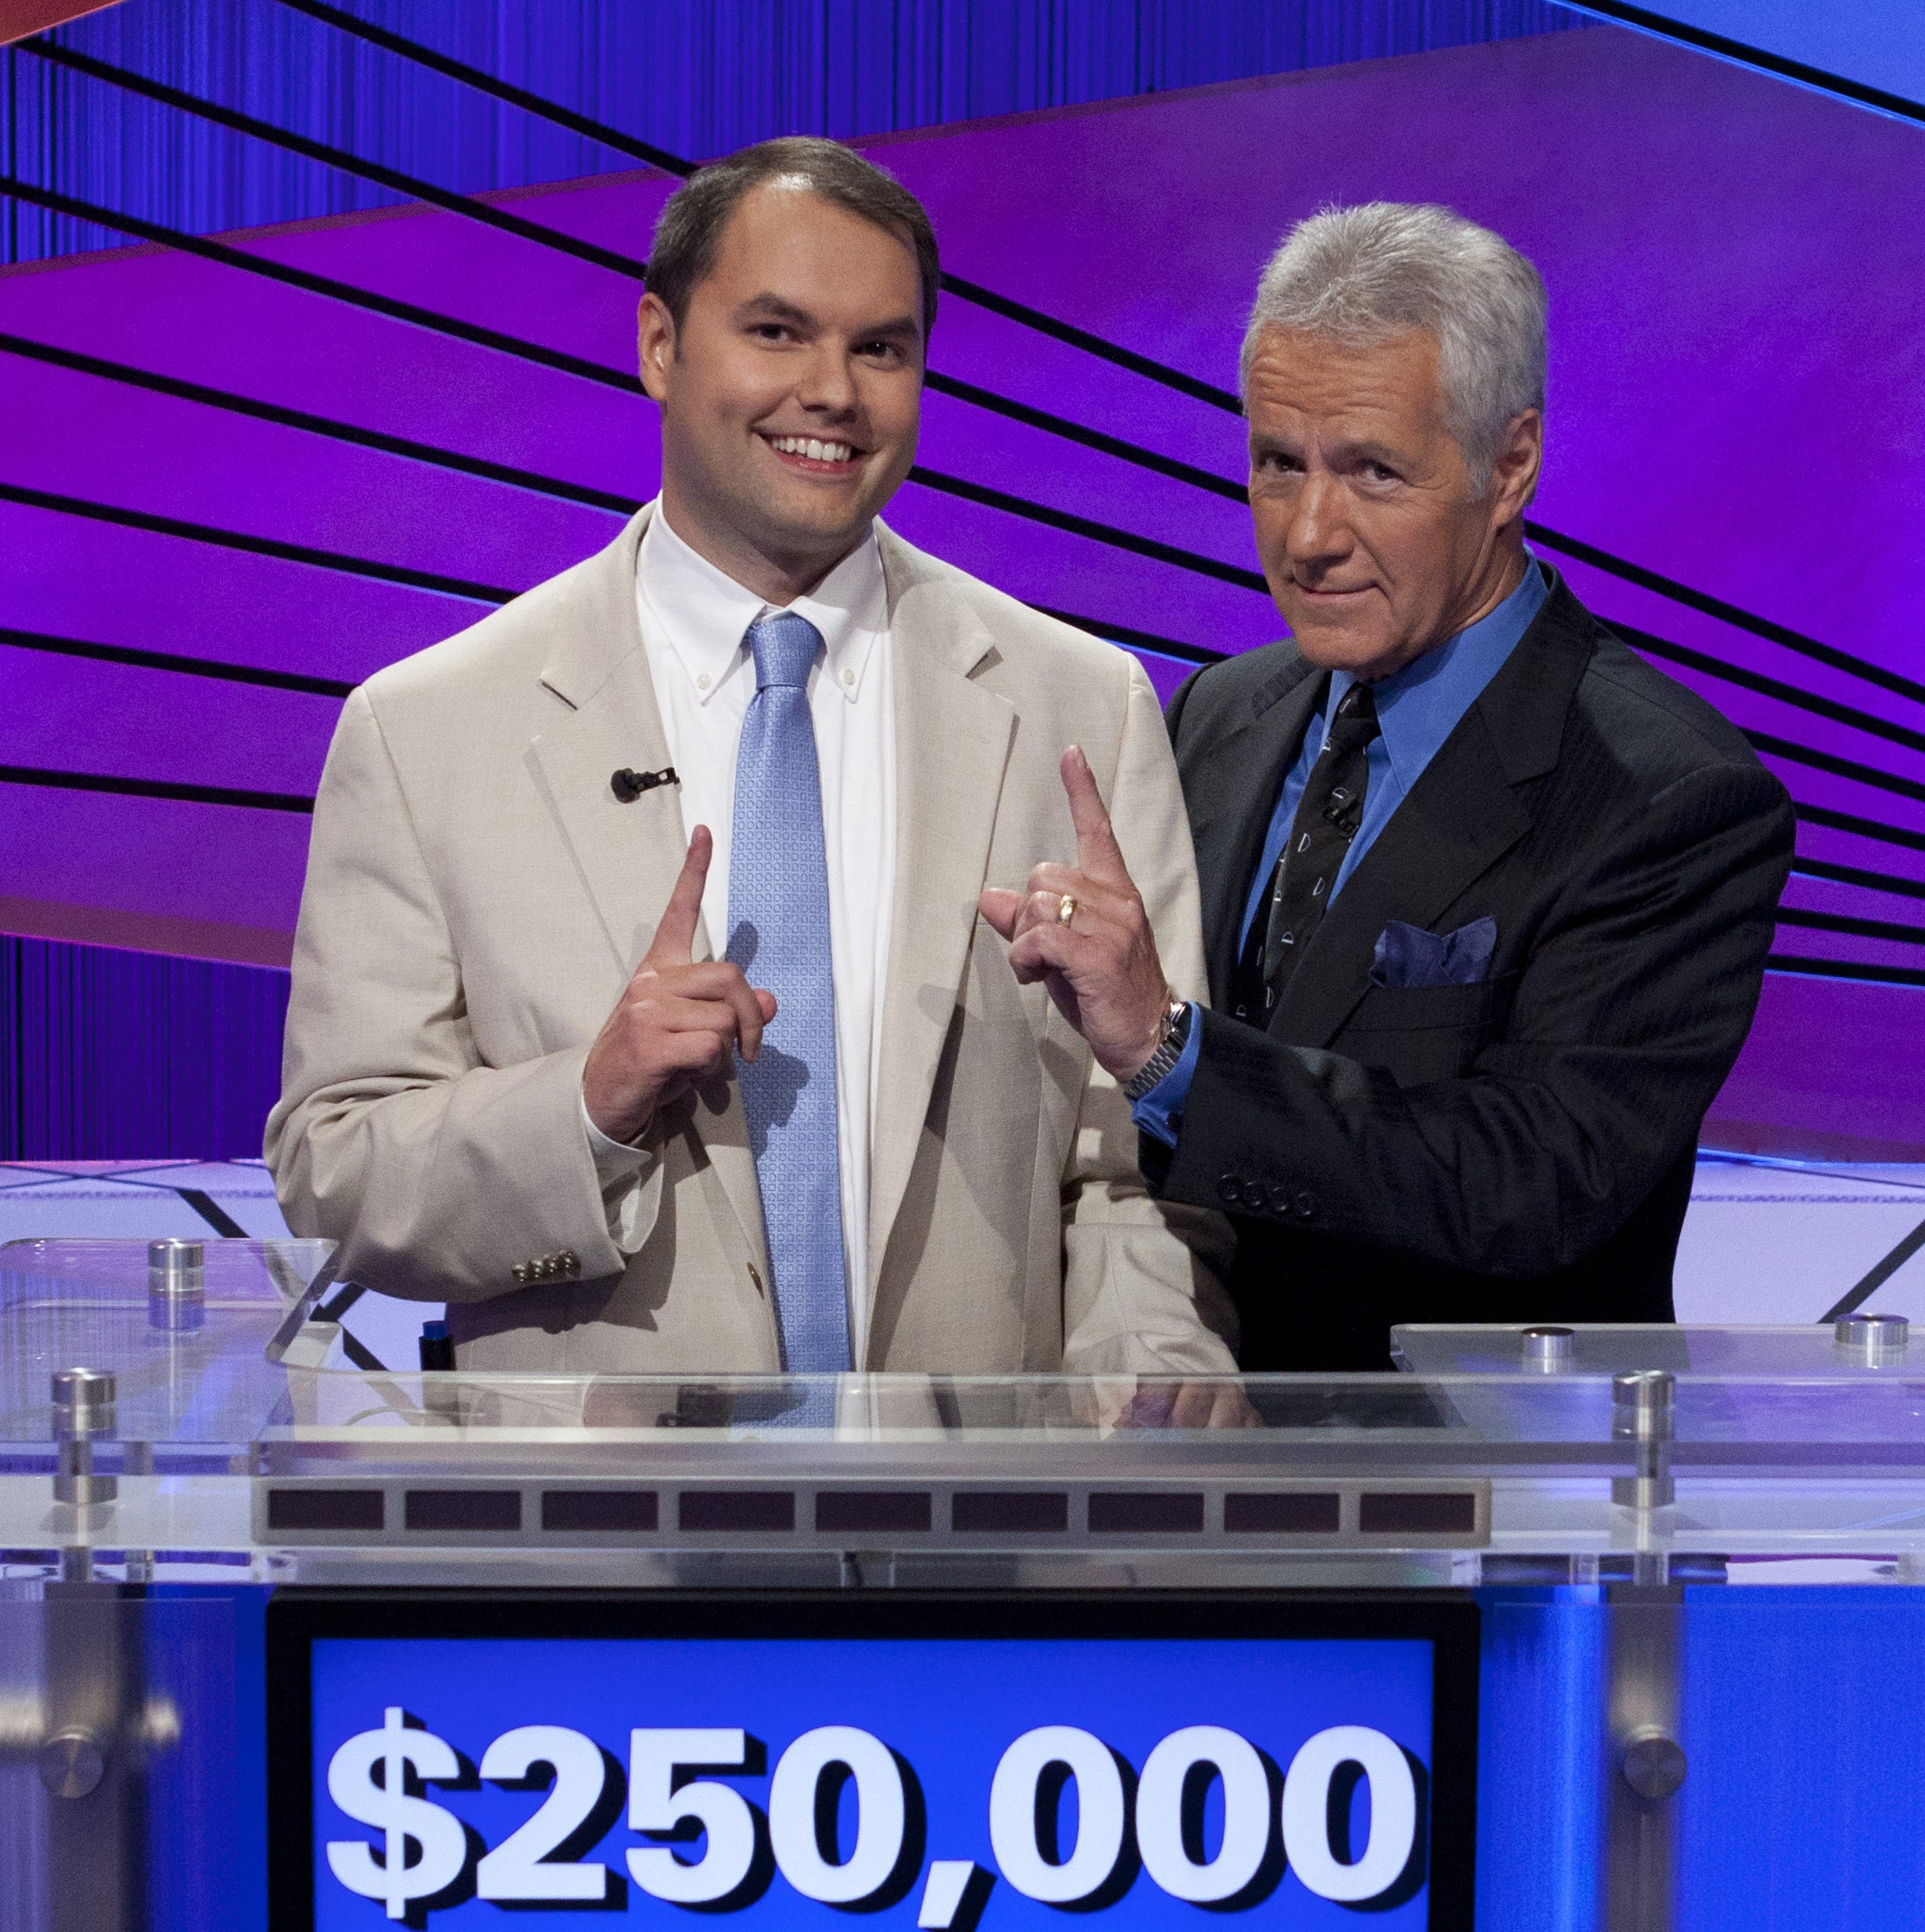 Delaware man's single-day 'Jeopardy!' record shattered